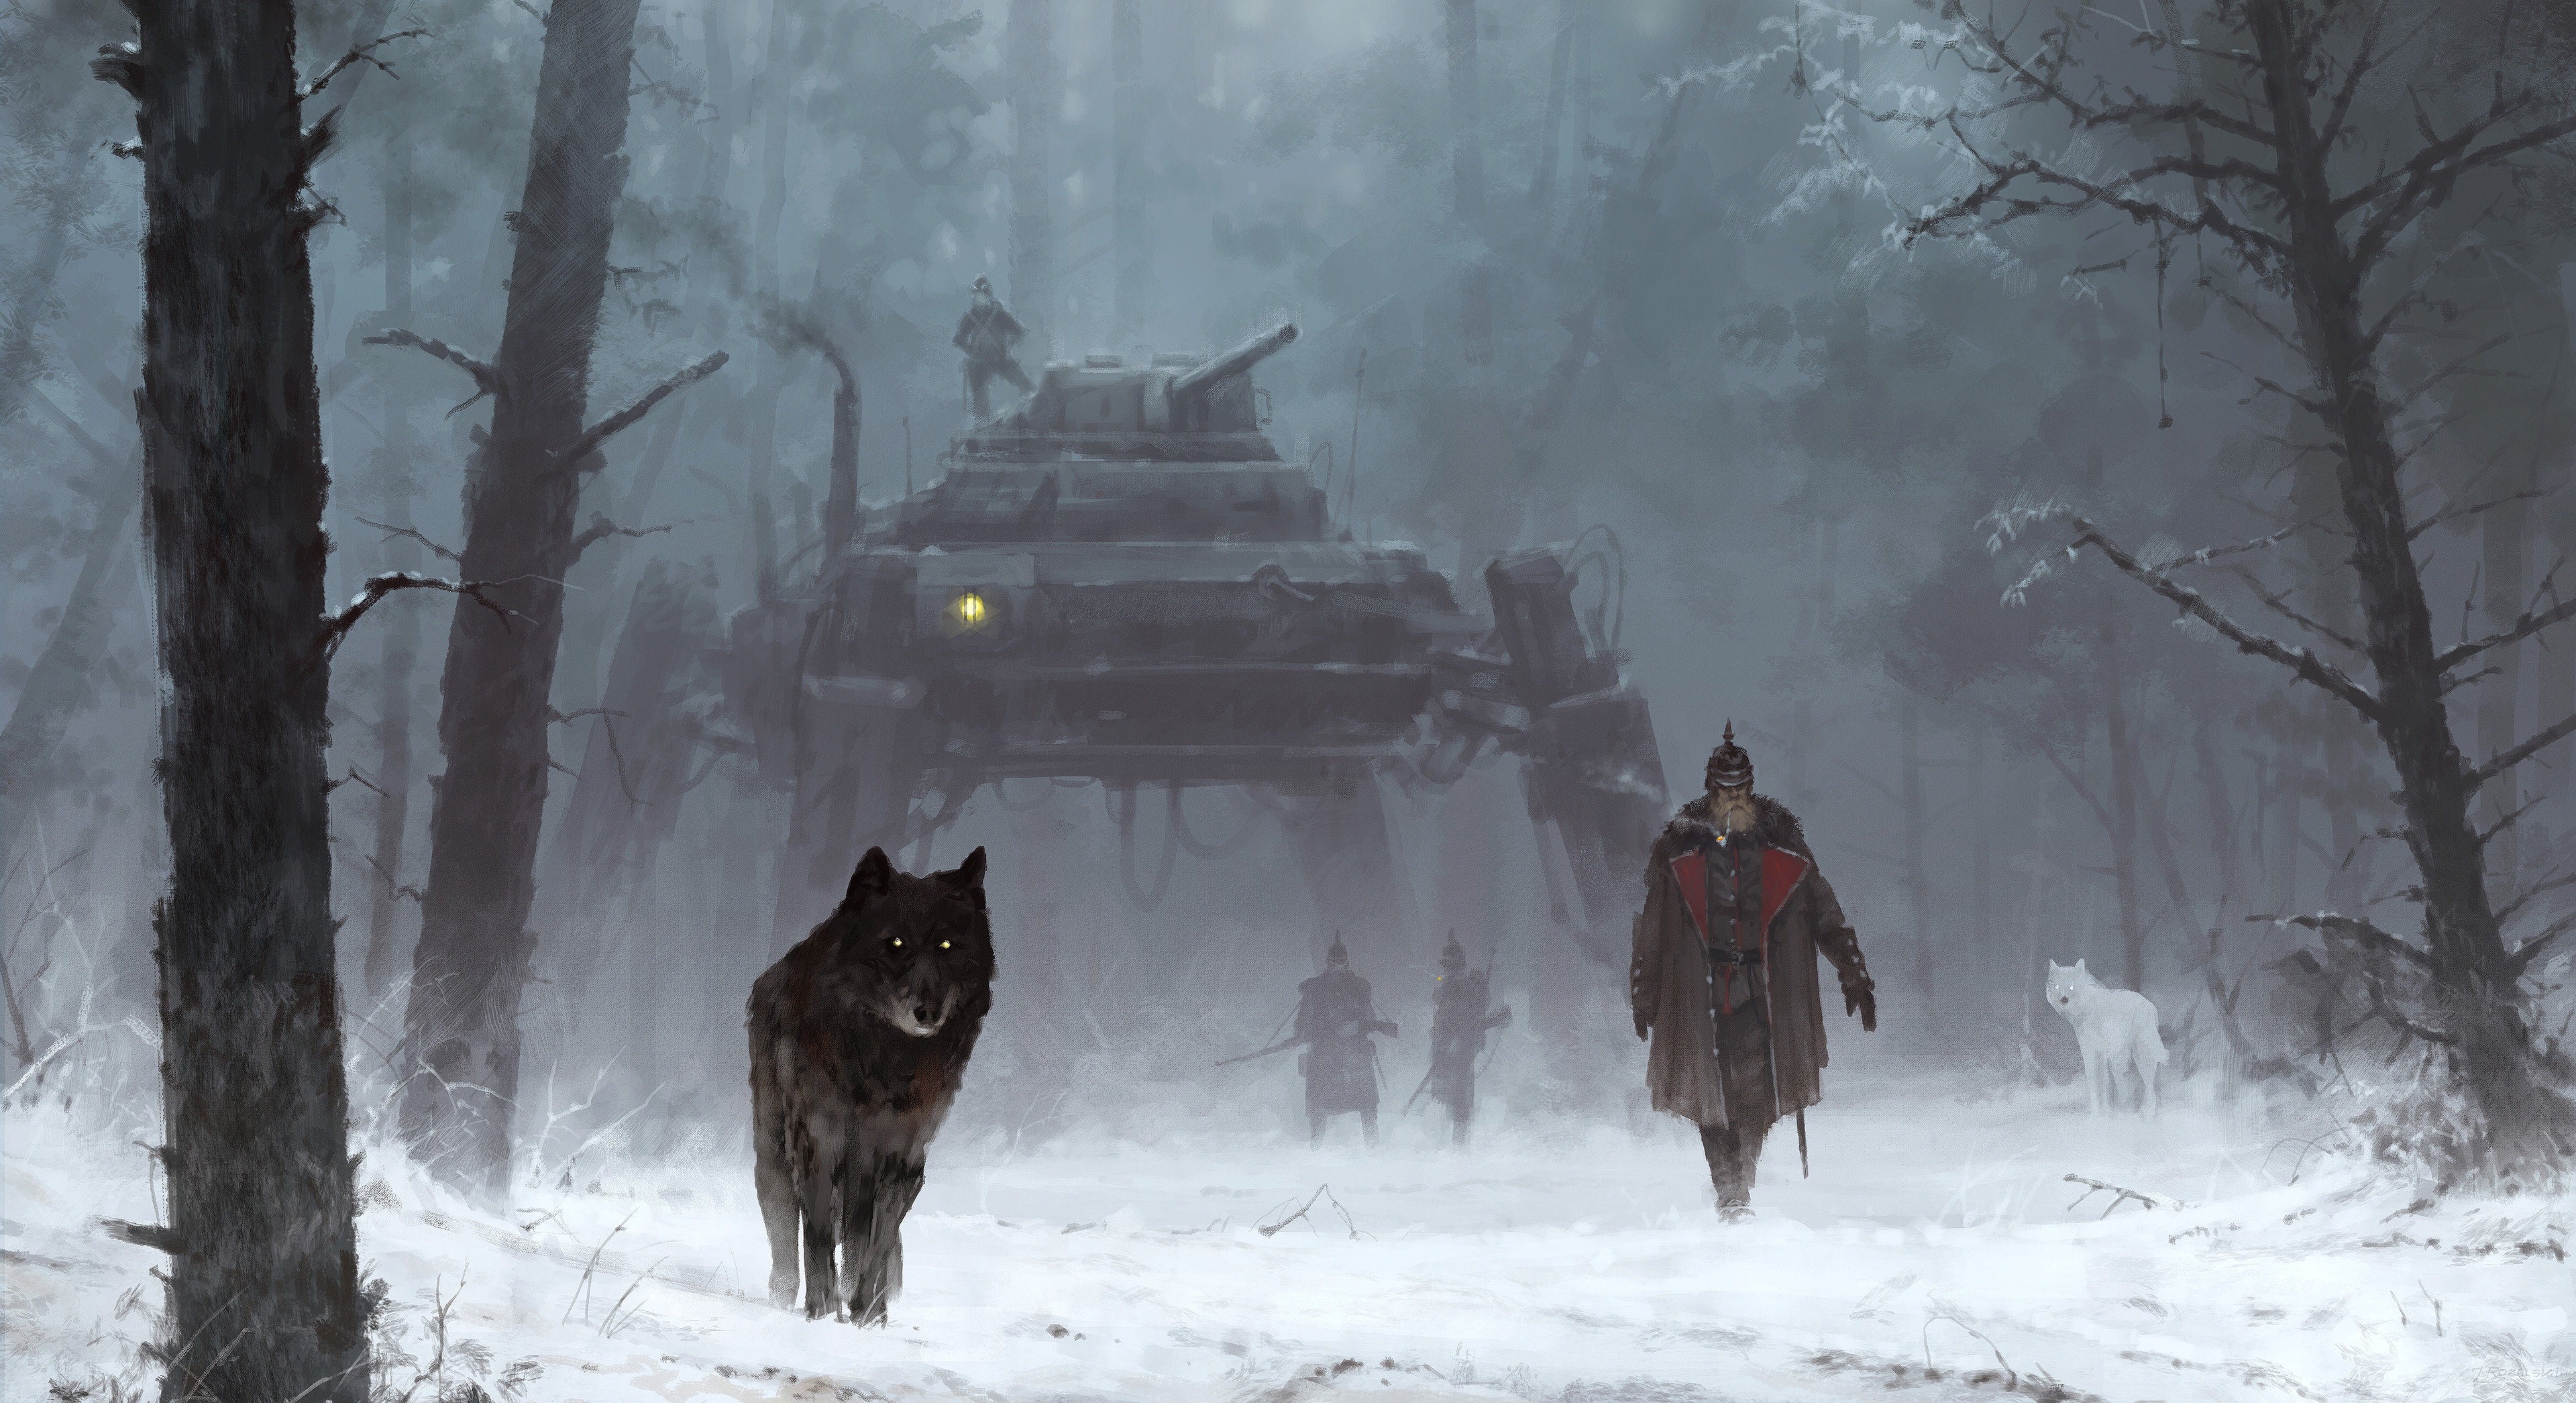 Gunter and his dire wolves: Nacht & Tag